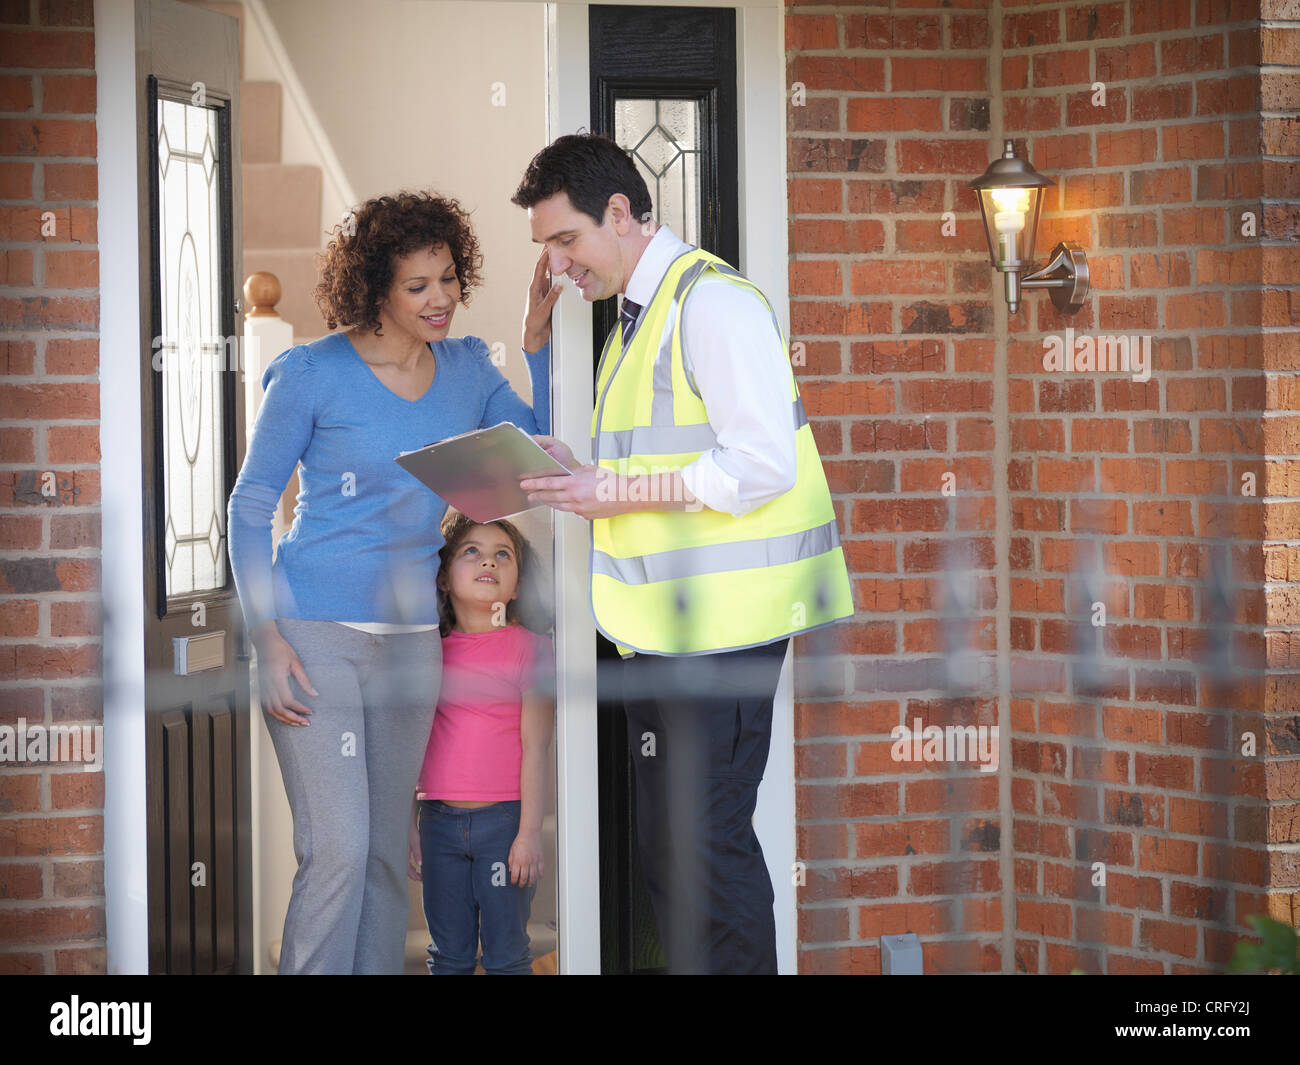 Energy worker talking to family - Stock Image